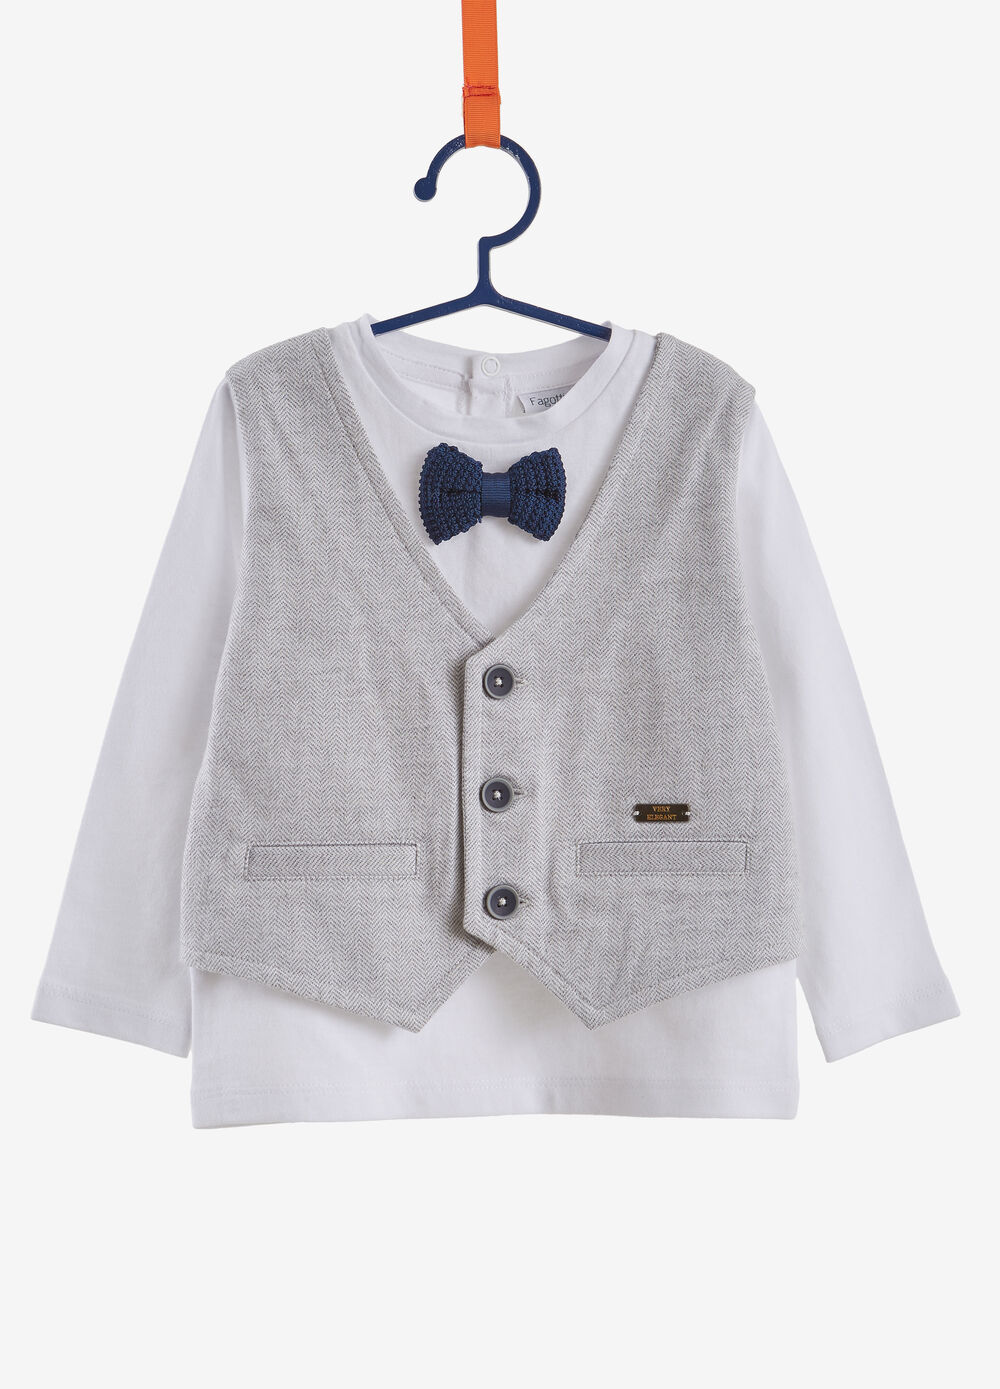 100% cotton T-shirt with gilet